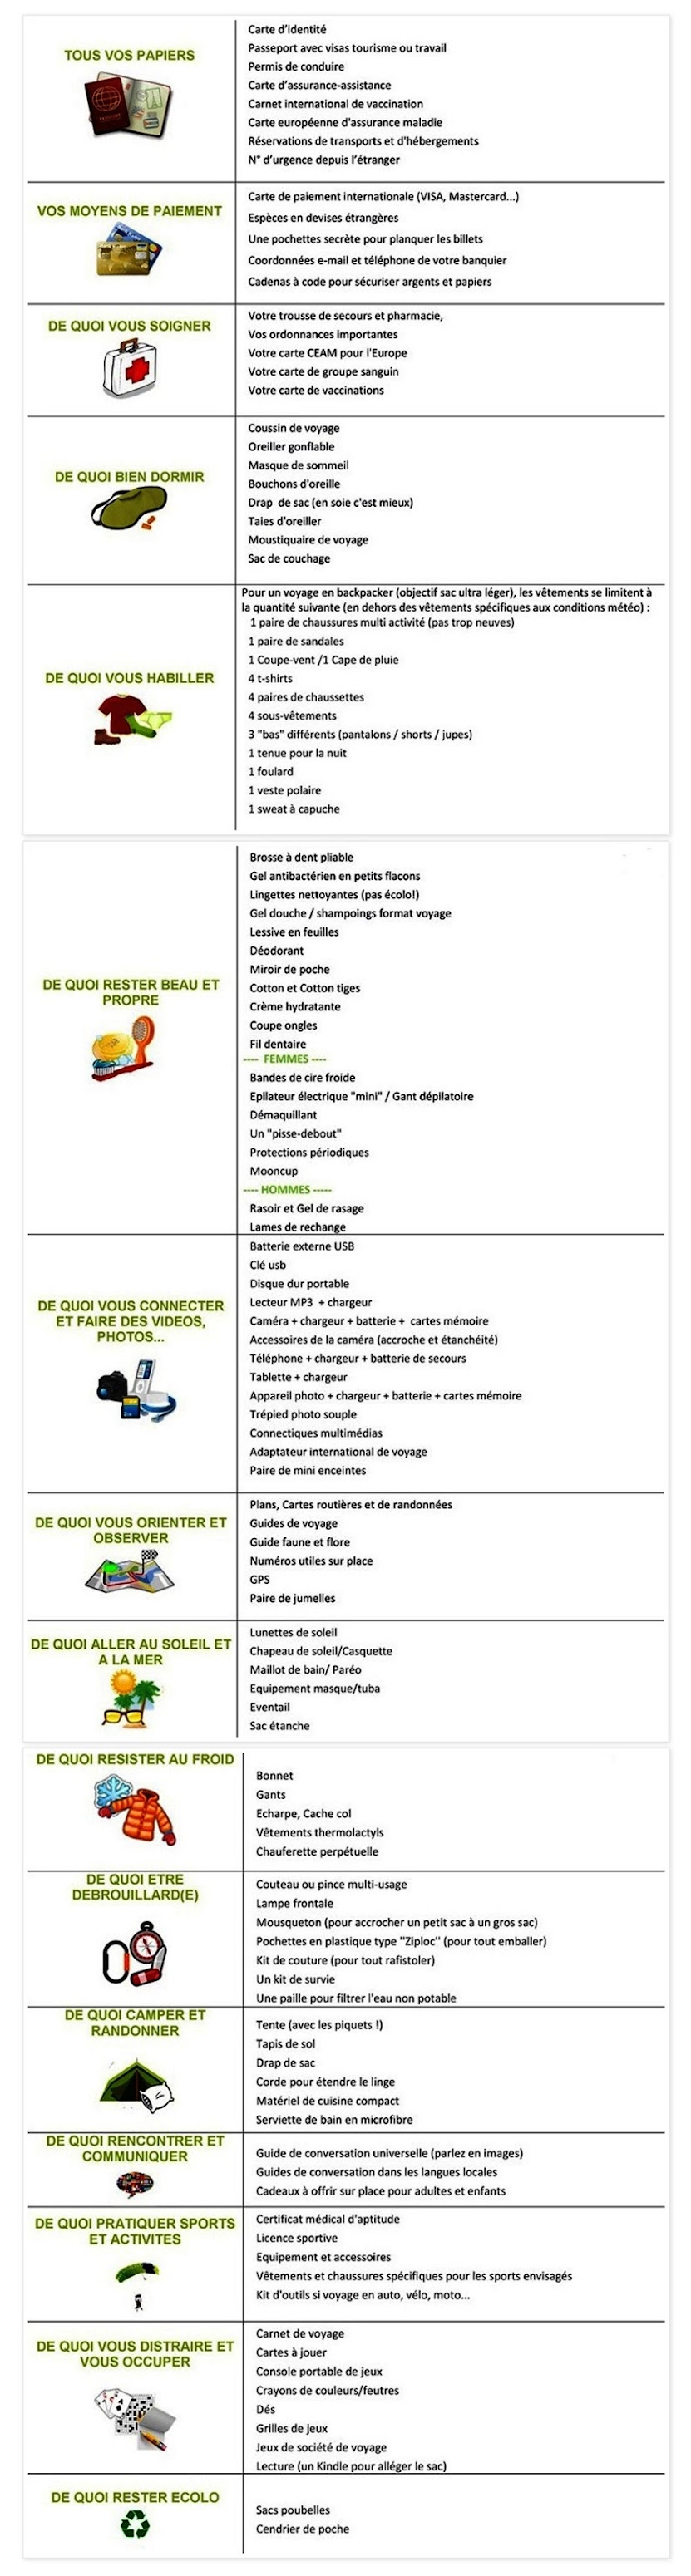 Tics en fle check list pour faire son sac de voyage for Liste chaine canalsat grand panorama pdf